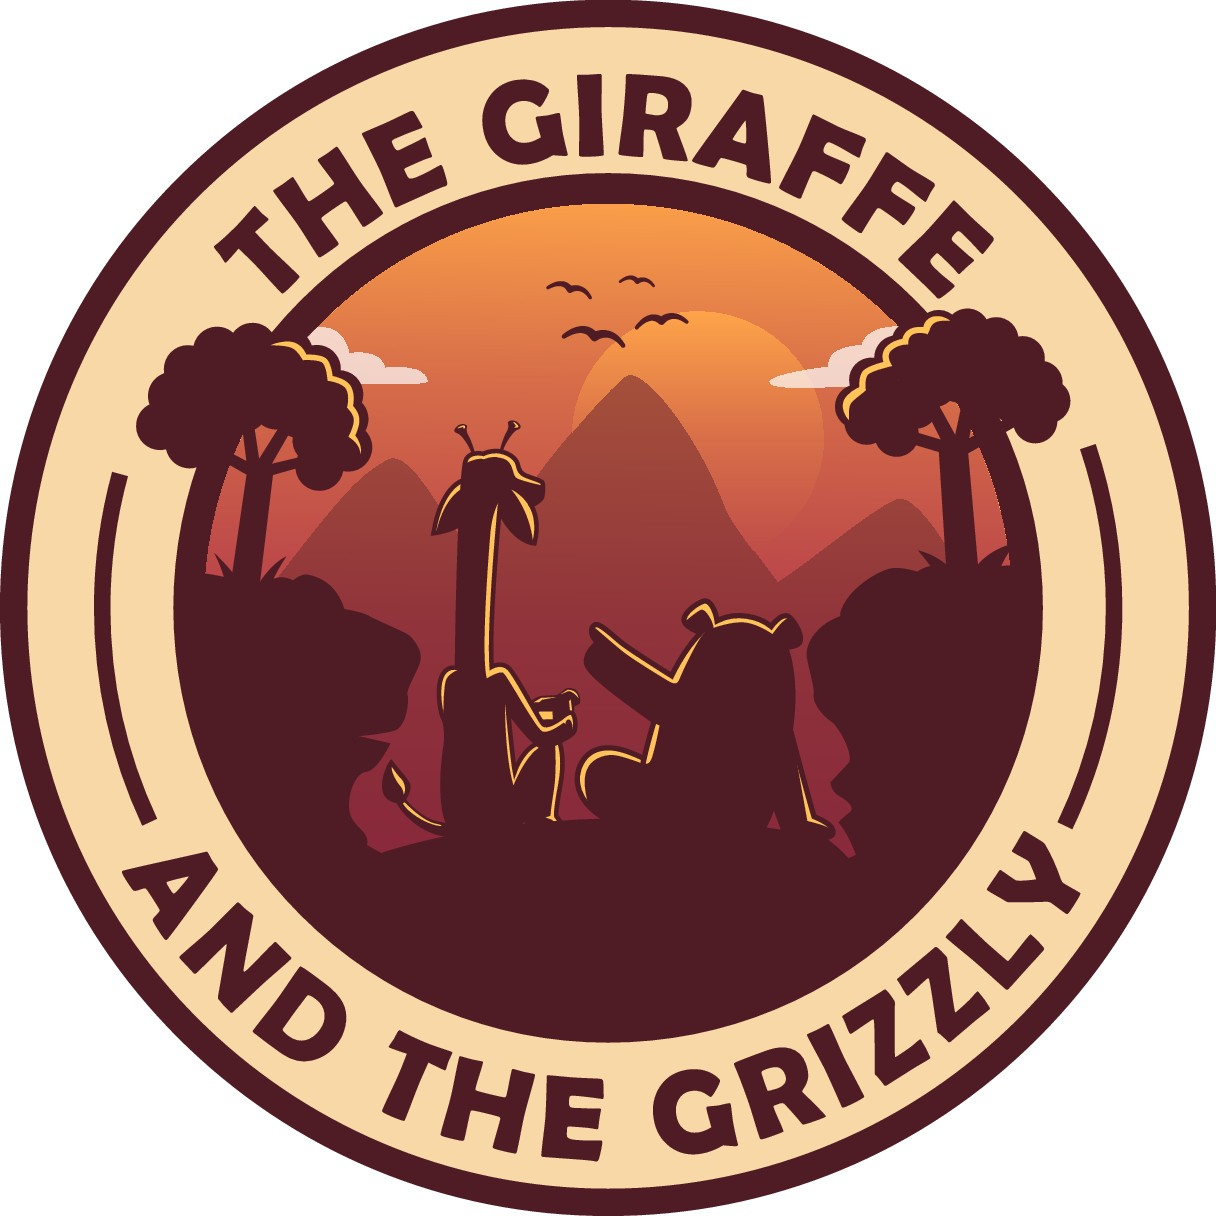 The giraffe and the grizzly